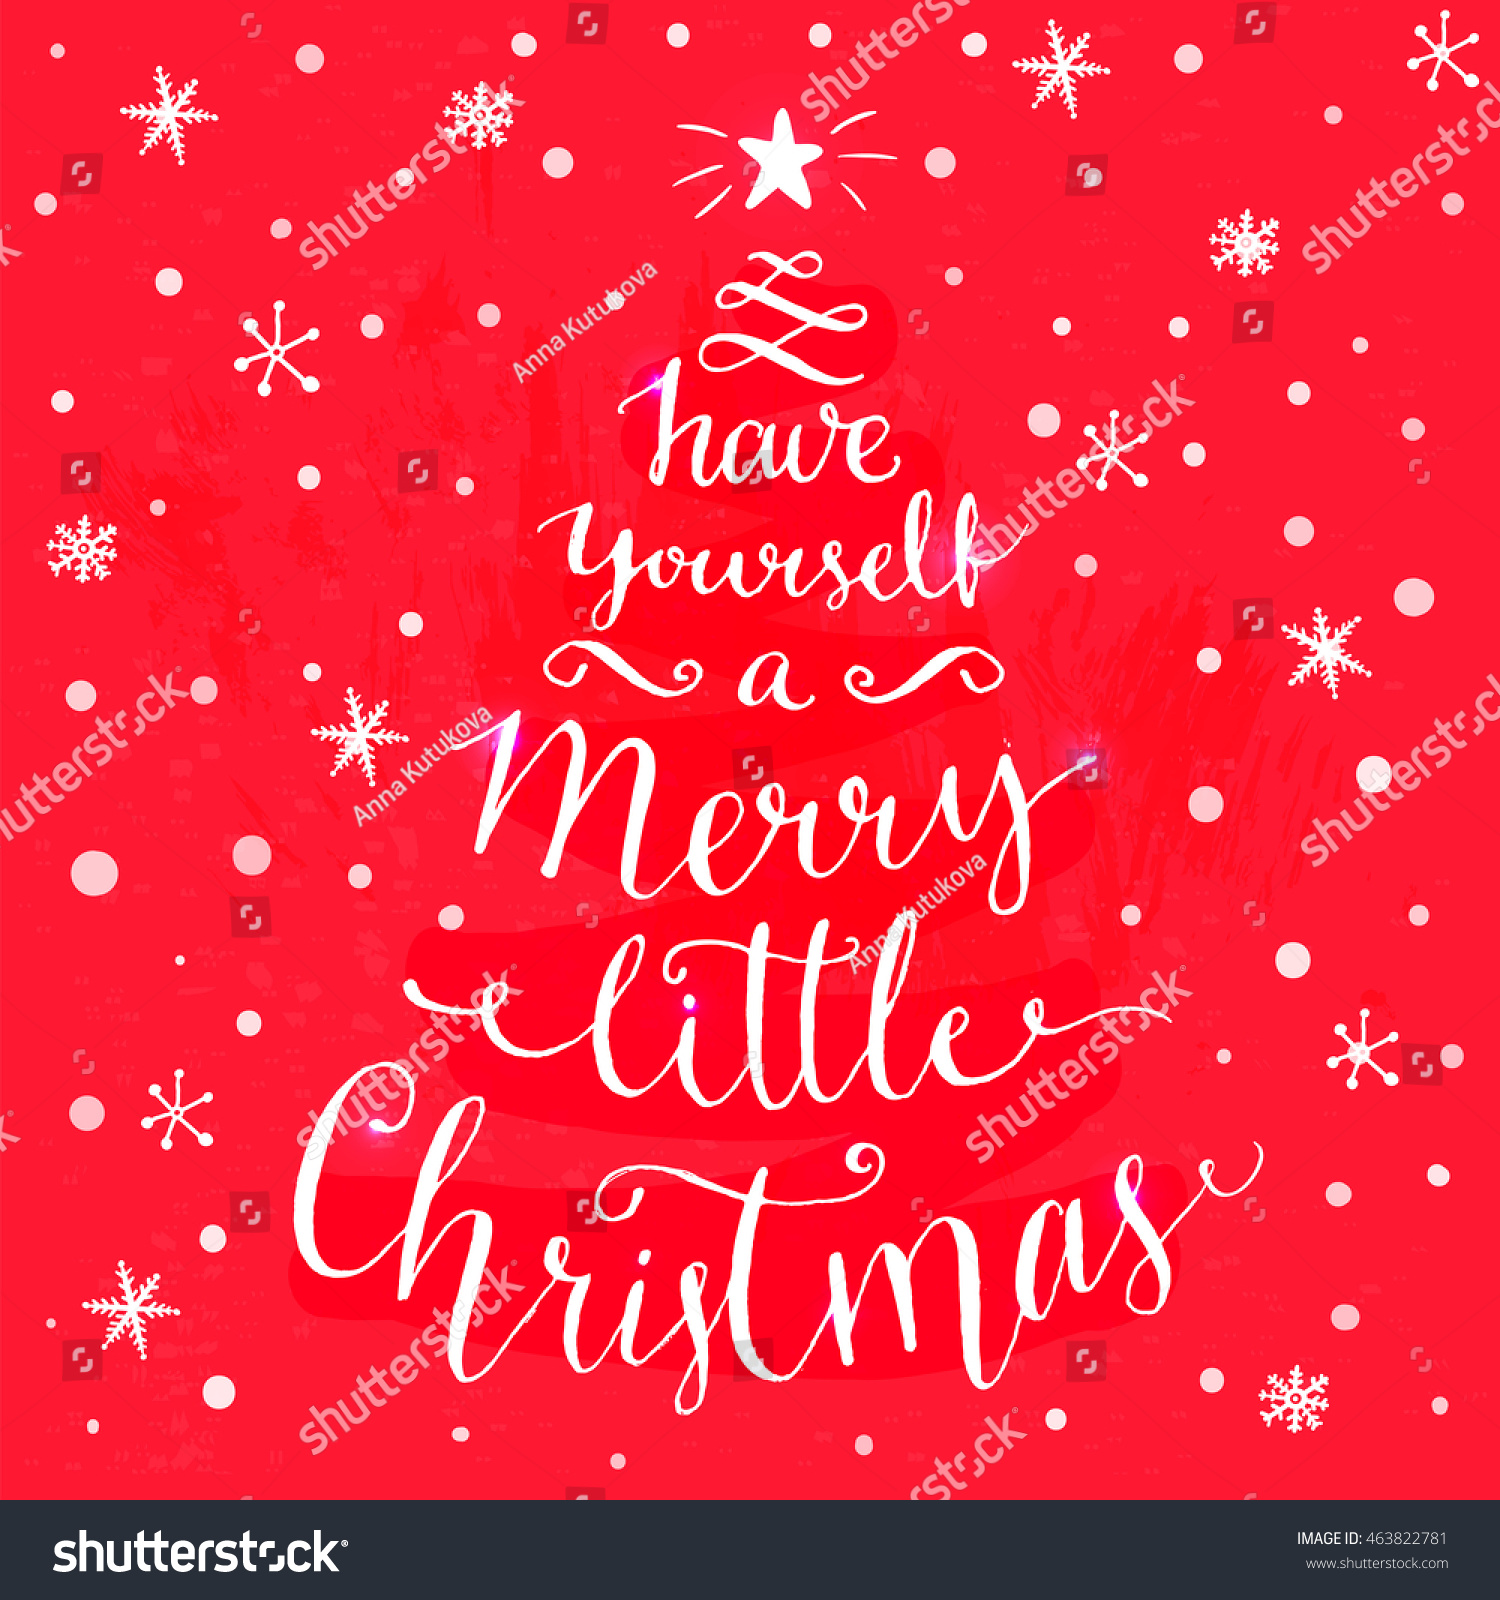 Have Yourself Merry Little Christmas Whimsical Stock ...